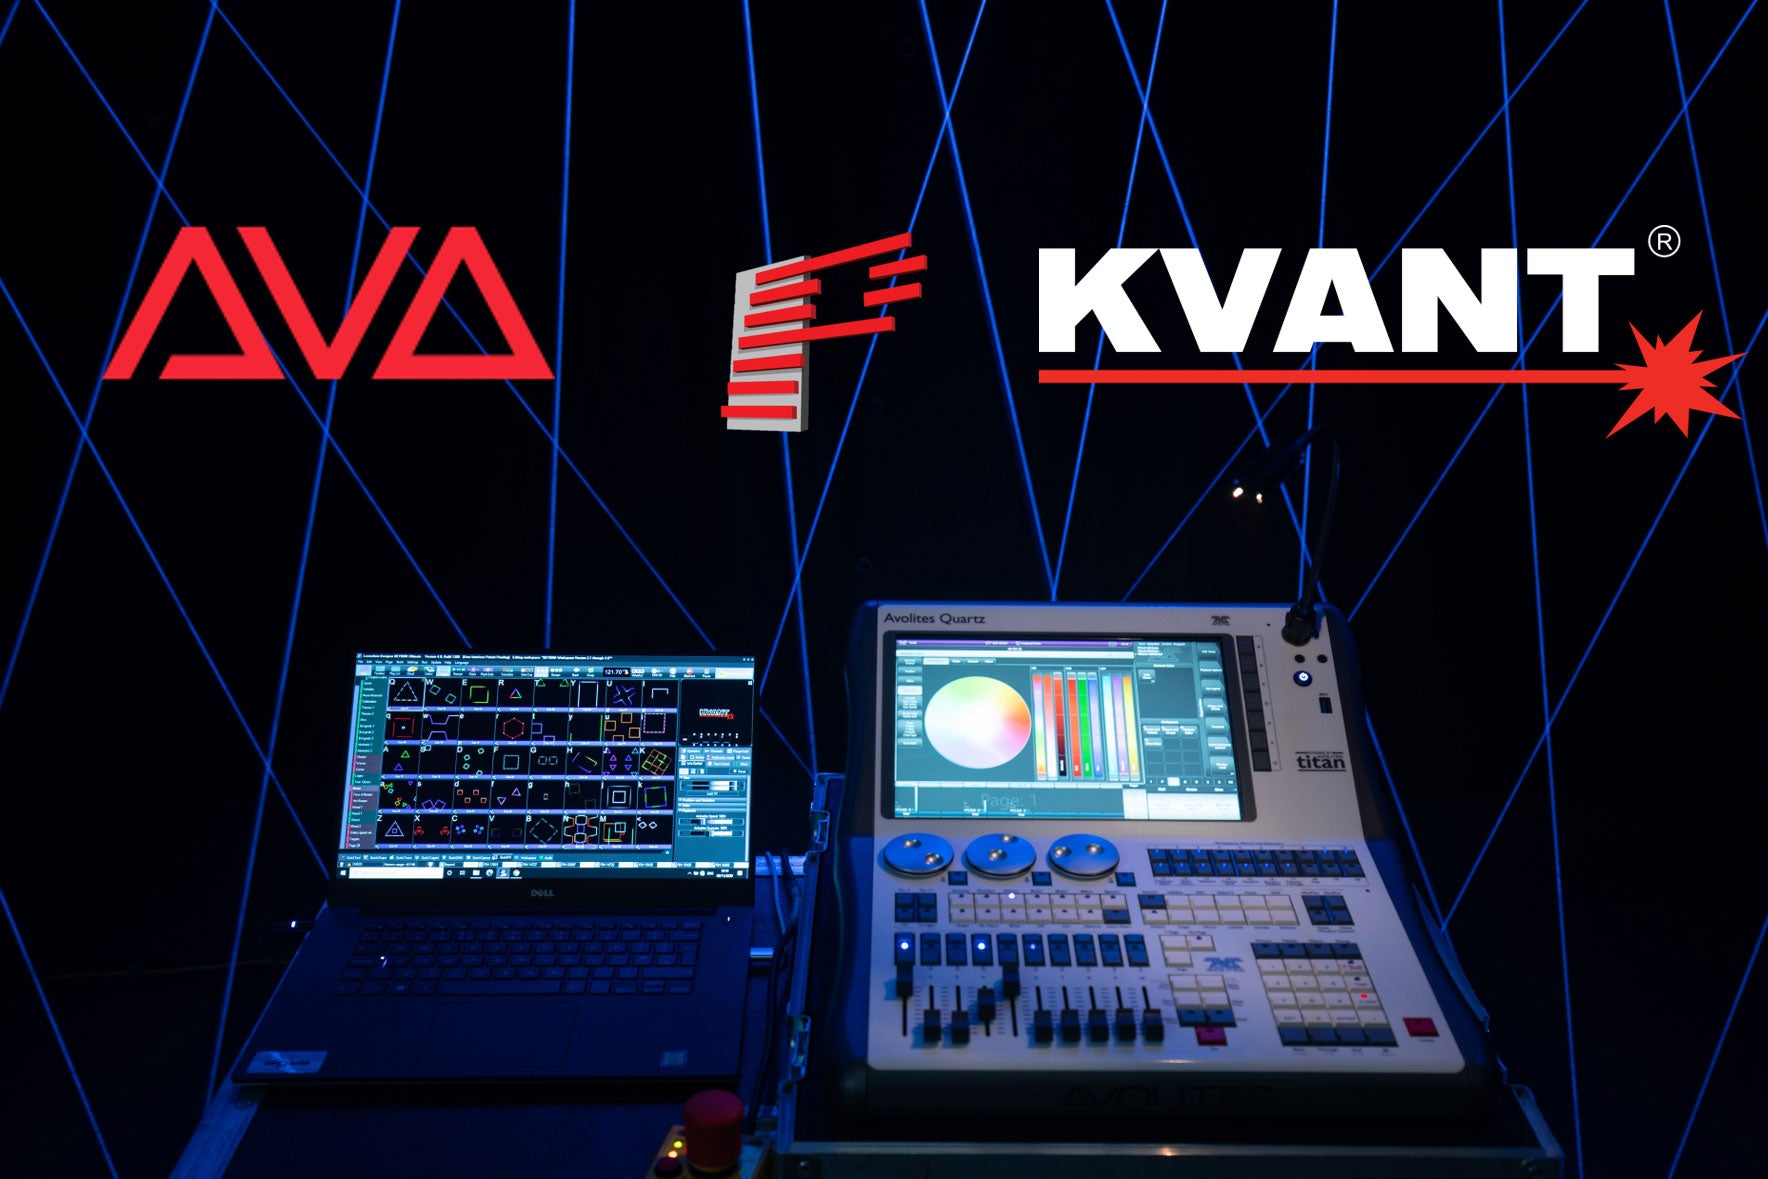 How to control your lasers from an Avolites lighting console